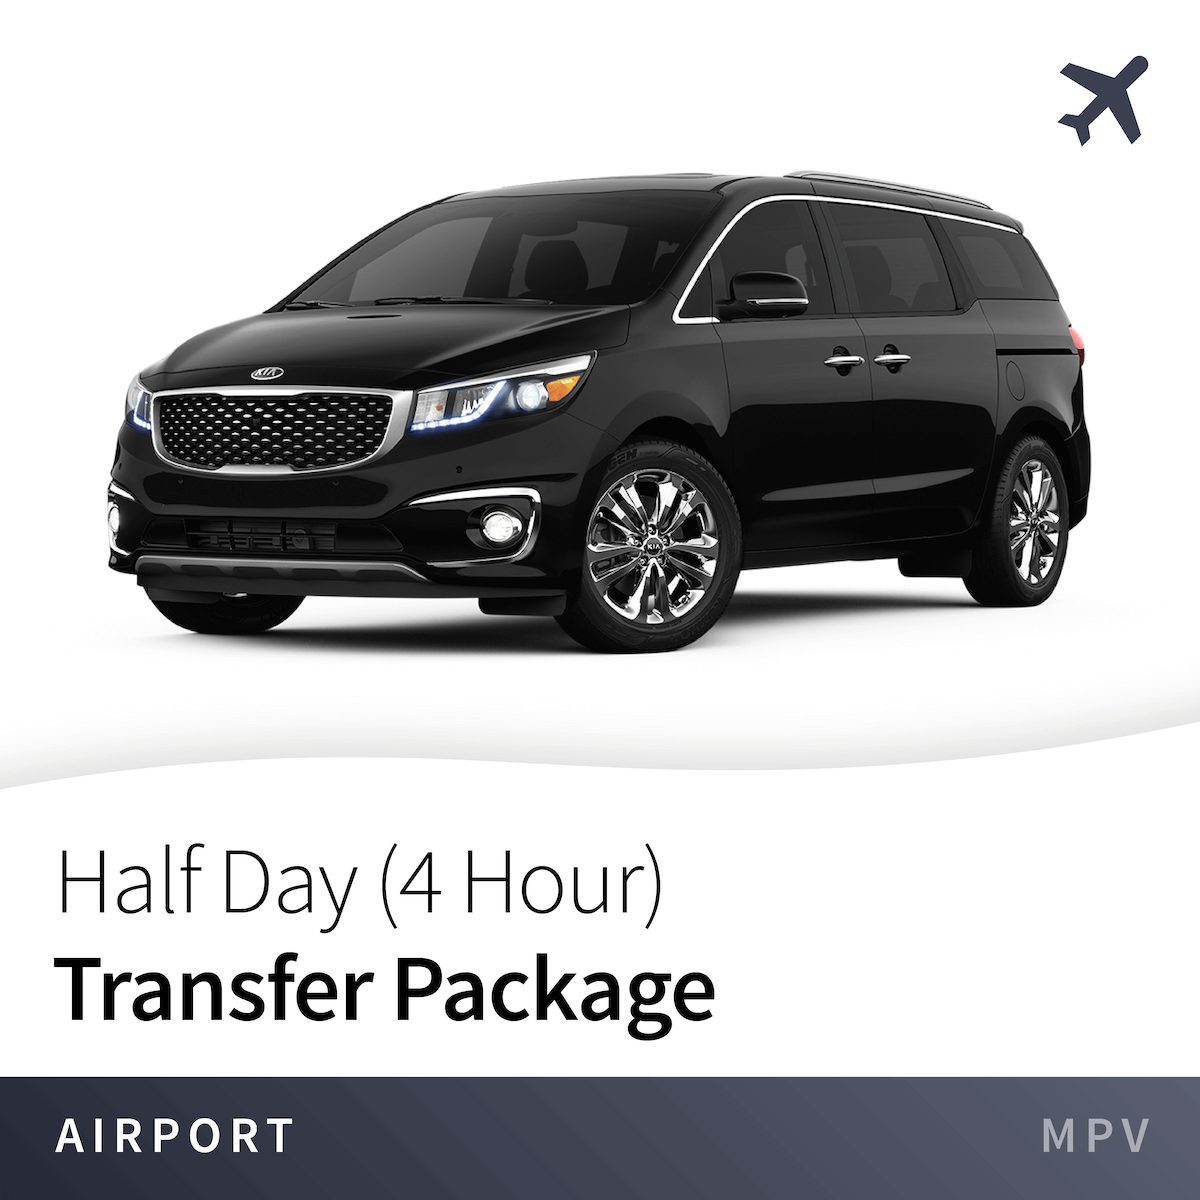 Half Day (4 Hour) Transfer Package From Airport - MPV 4